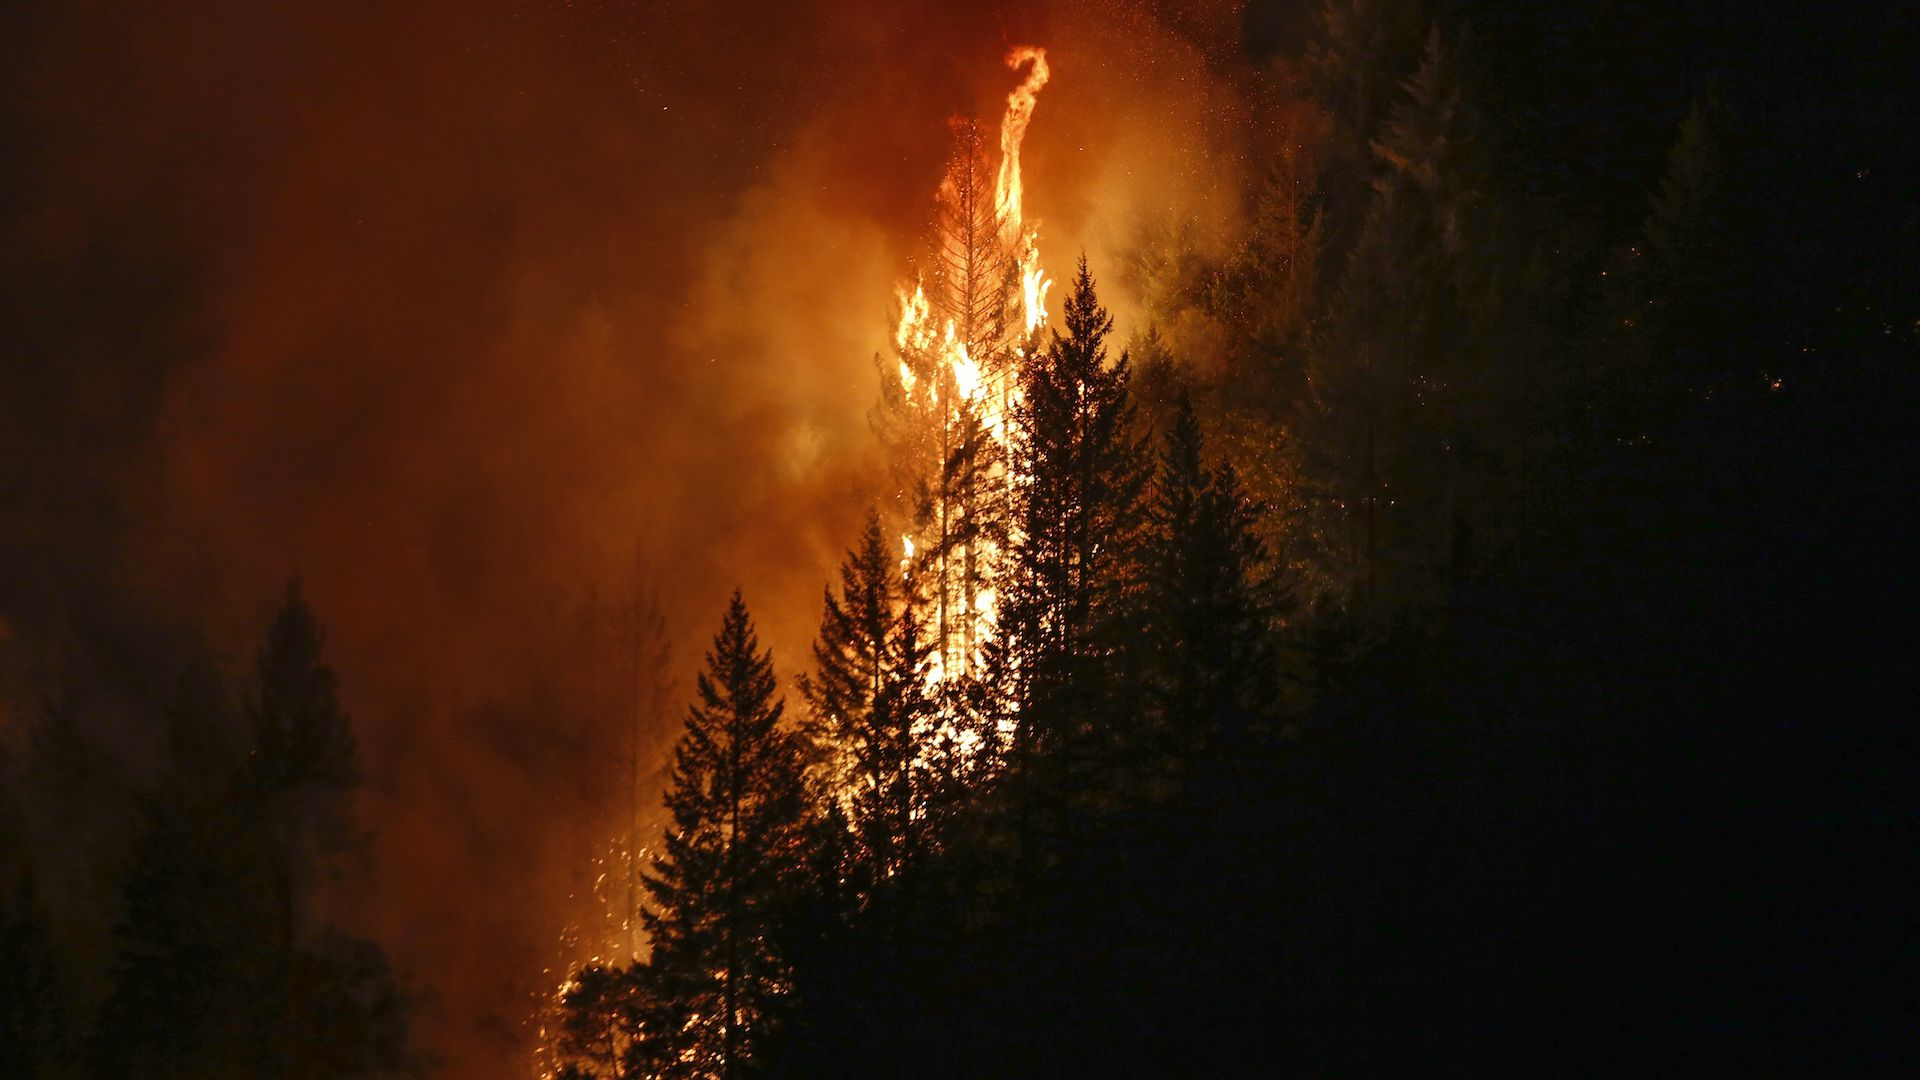 Fire And Ice Memory And Forgetting >> Fire Tornado That Hit Redding California Had 143 Mile Per Hour